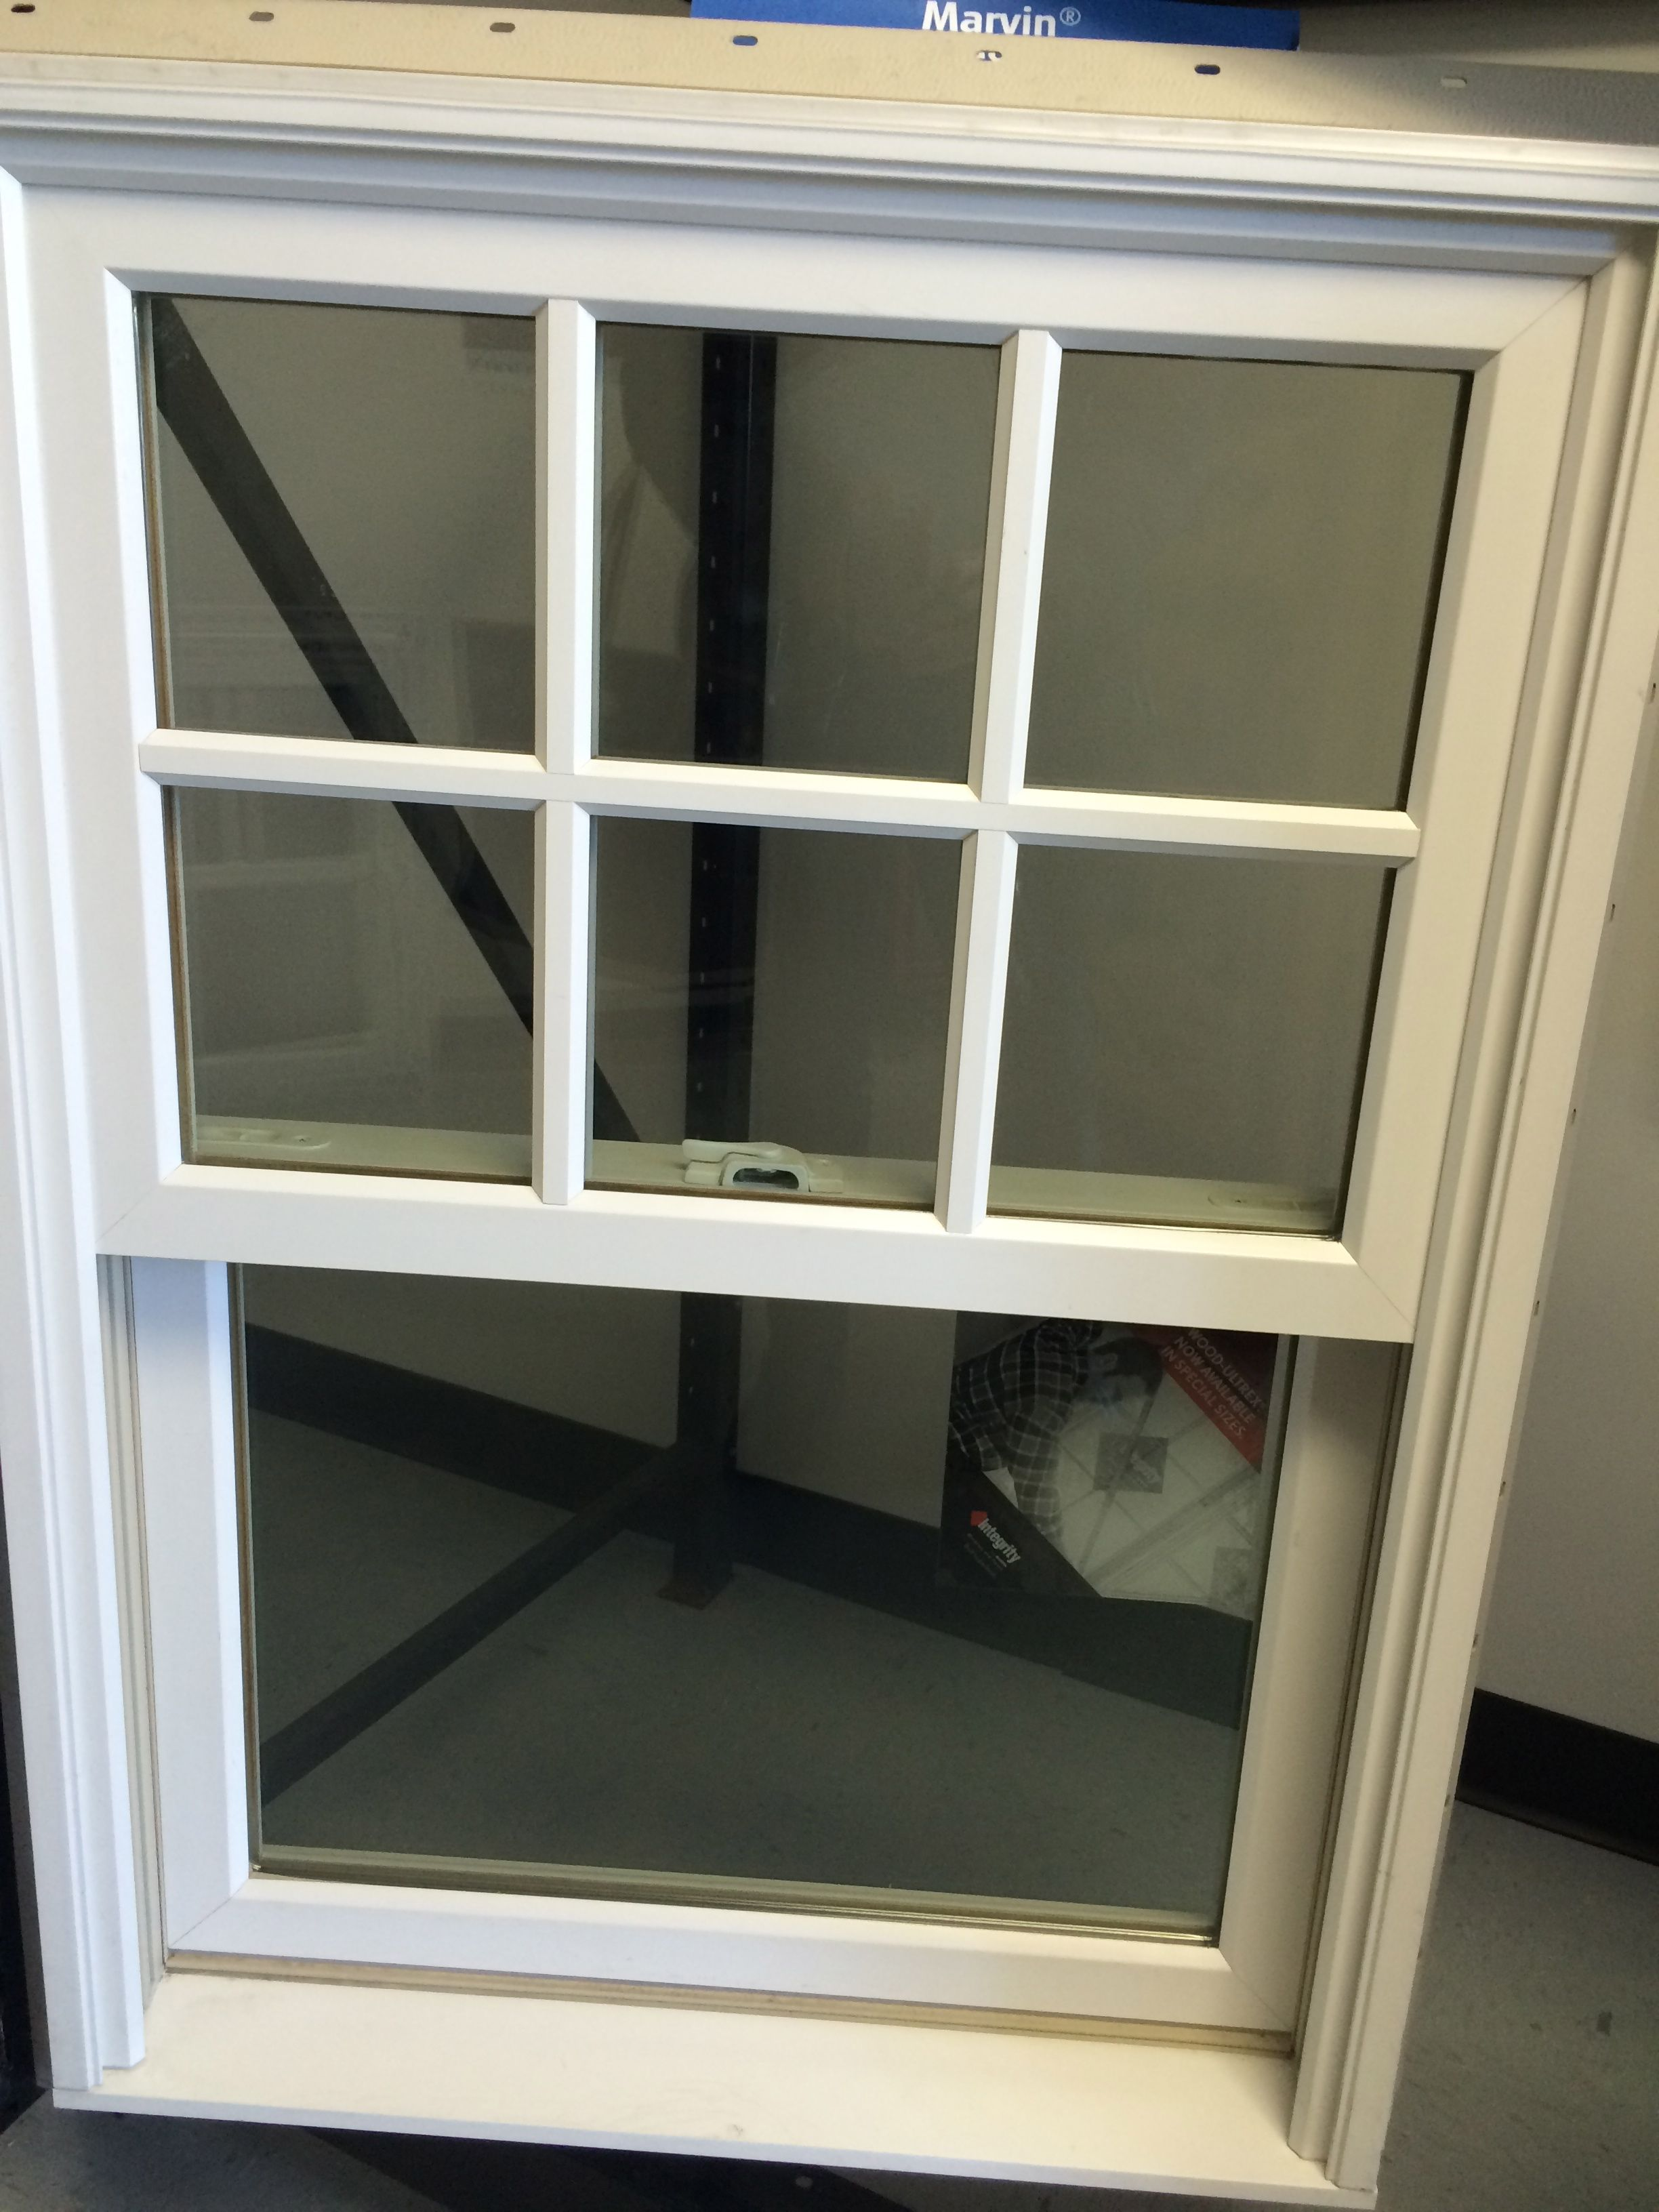 Marvin Integrity Double Hung